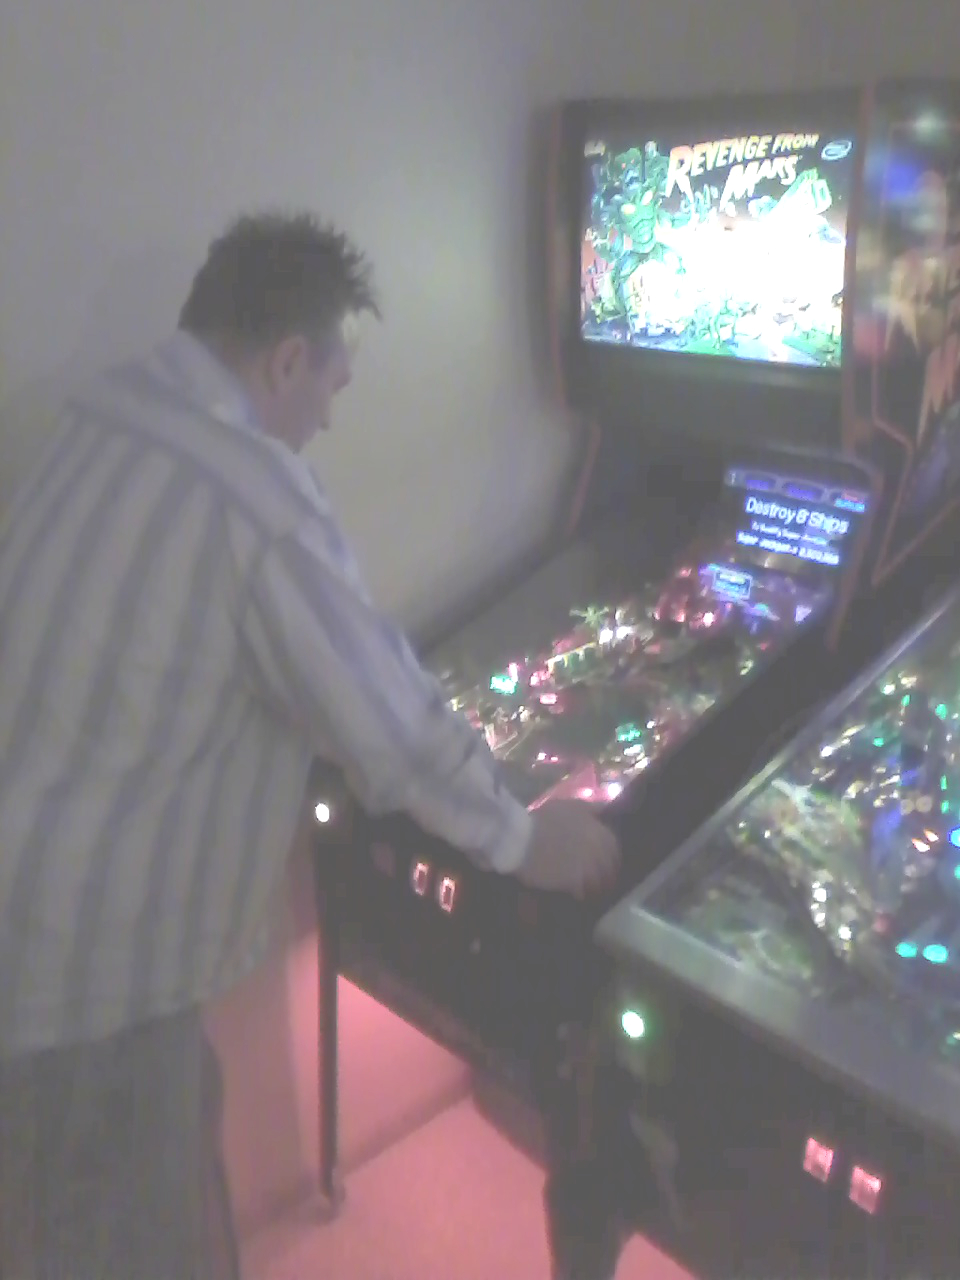 Iowa pinball club home gameroom party pictures in Grimes, IA